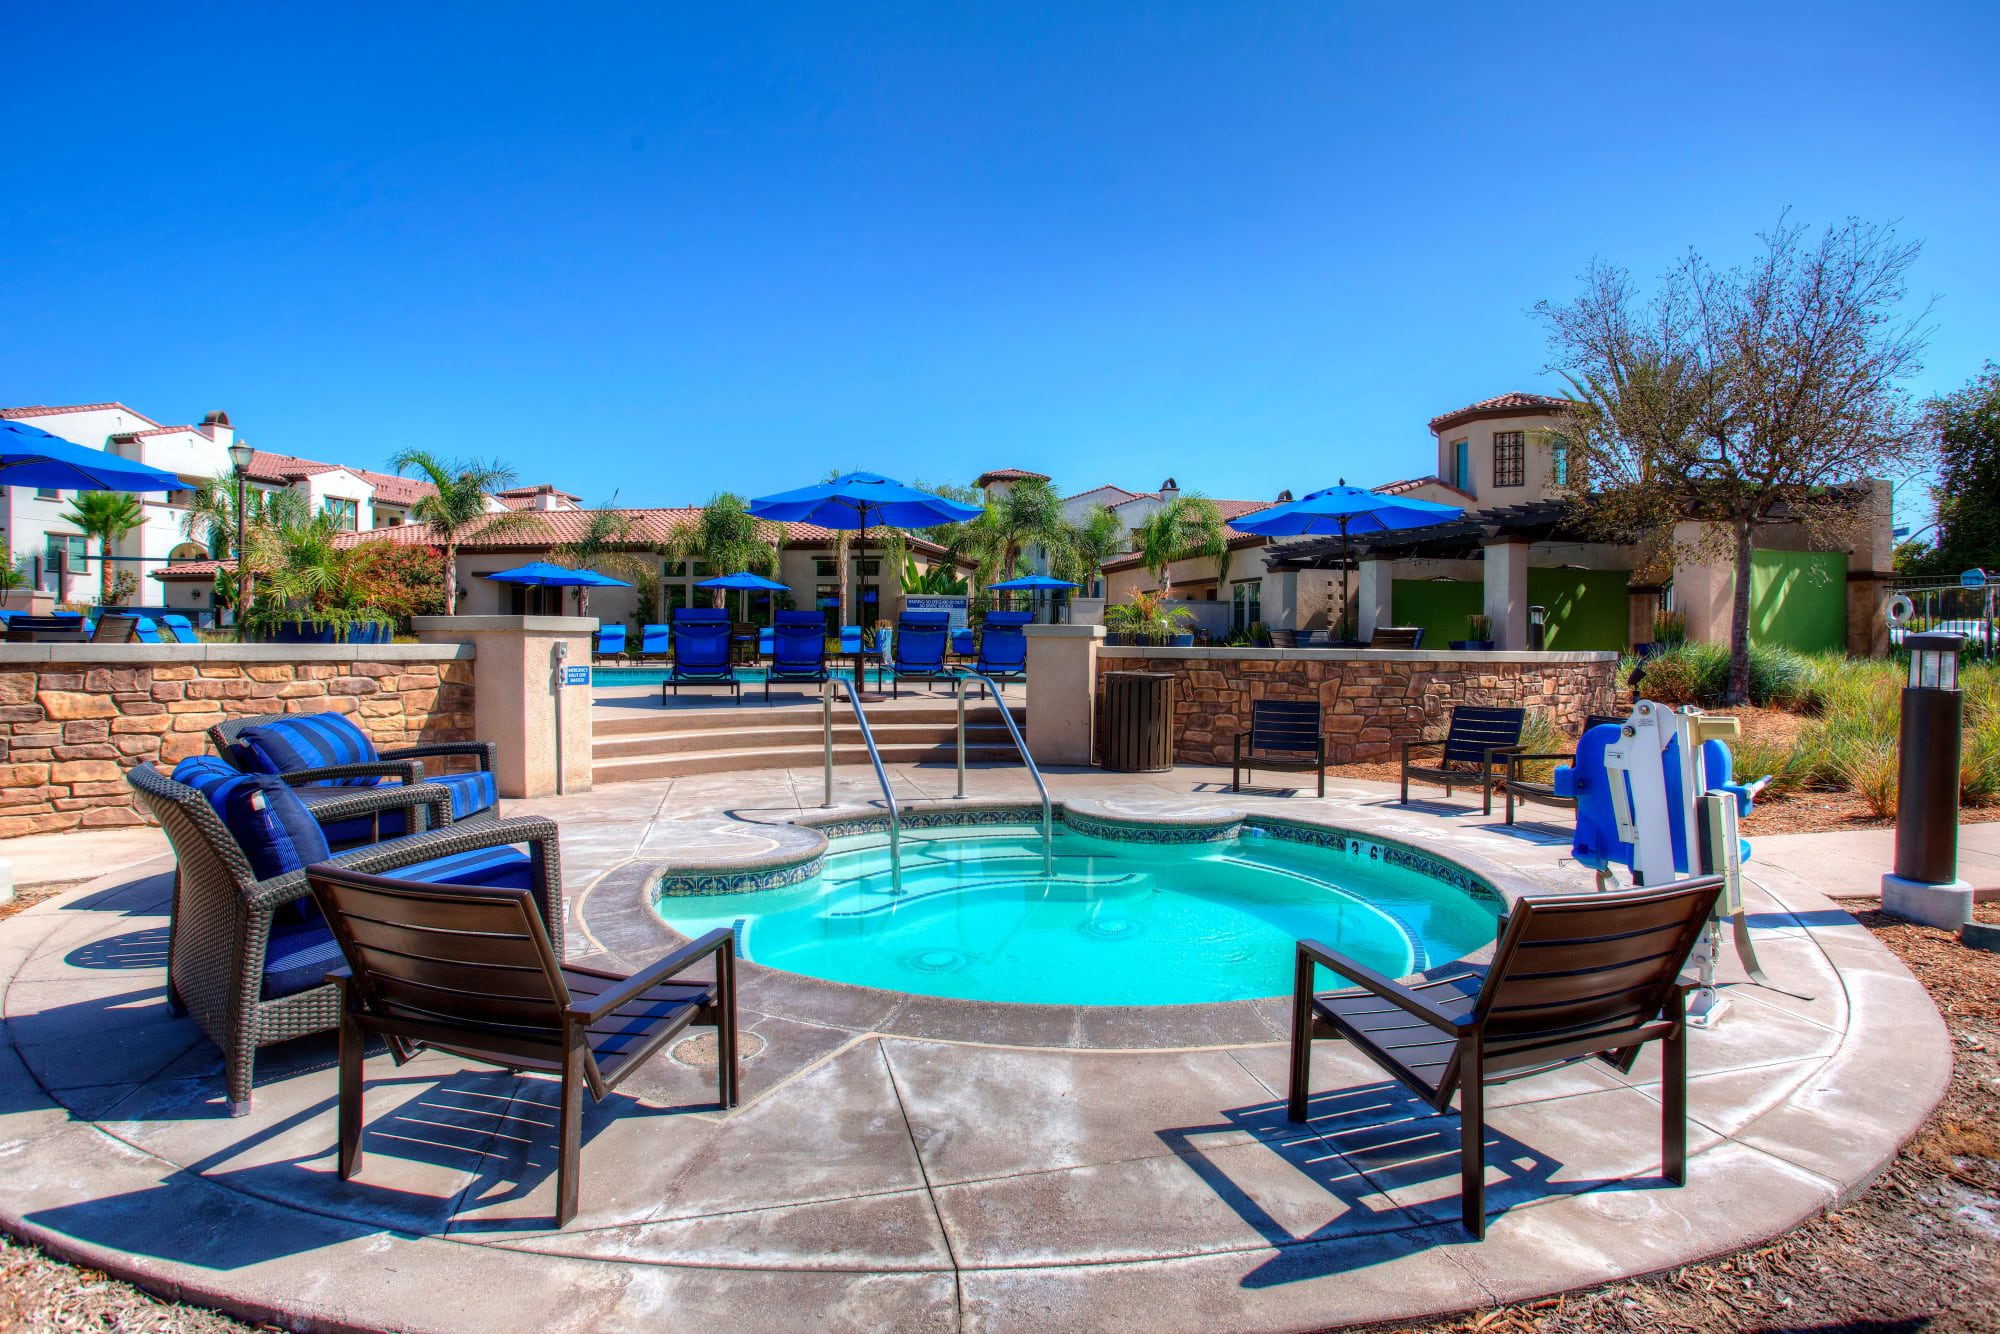 Deck chairs around the hot tub at Palisades Sierra Del Oro in Corona, California